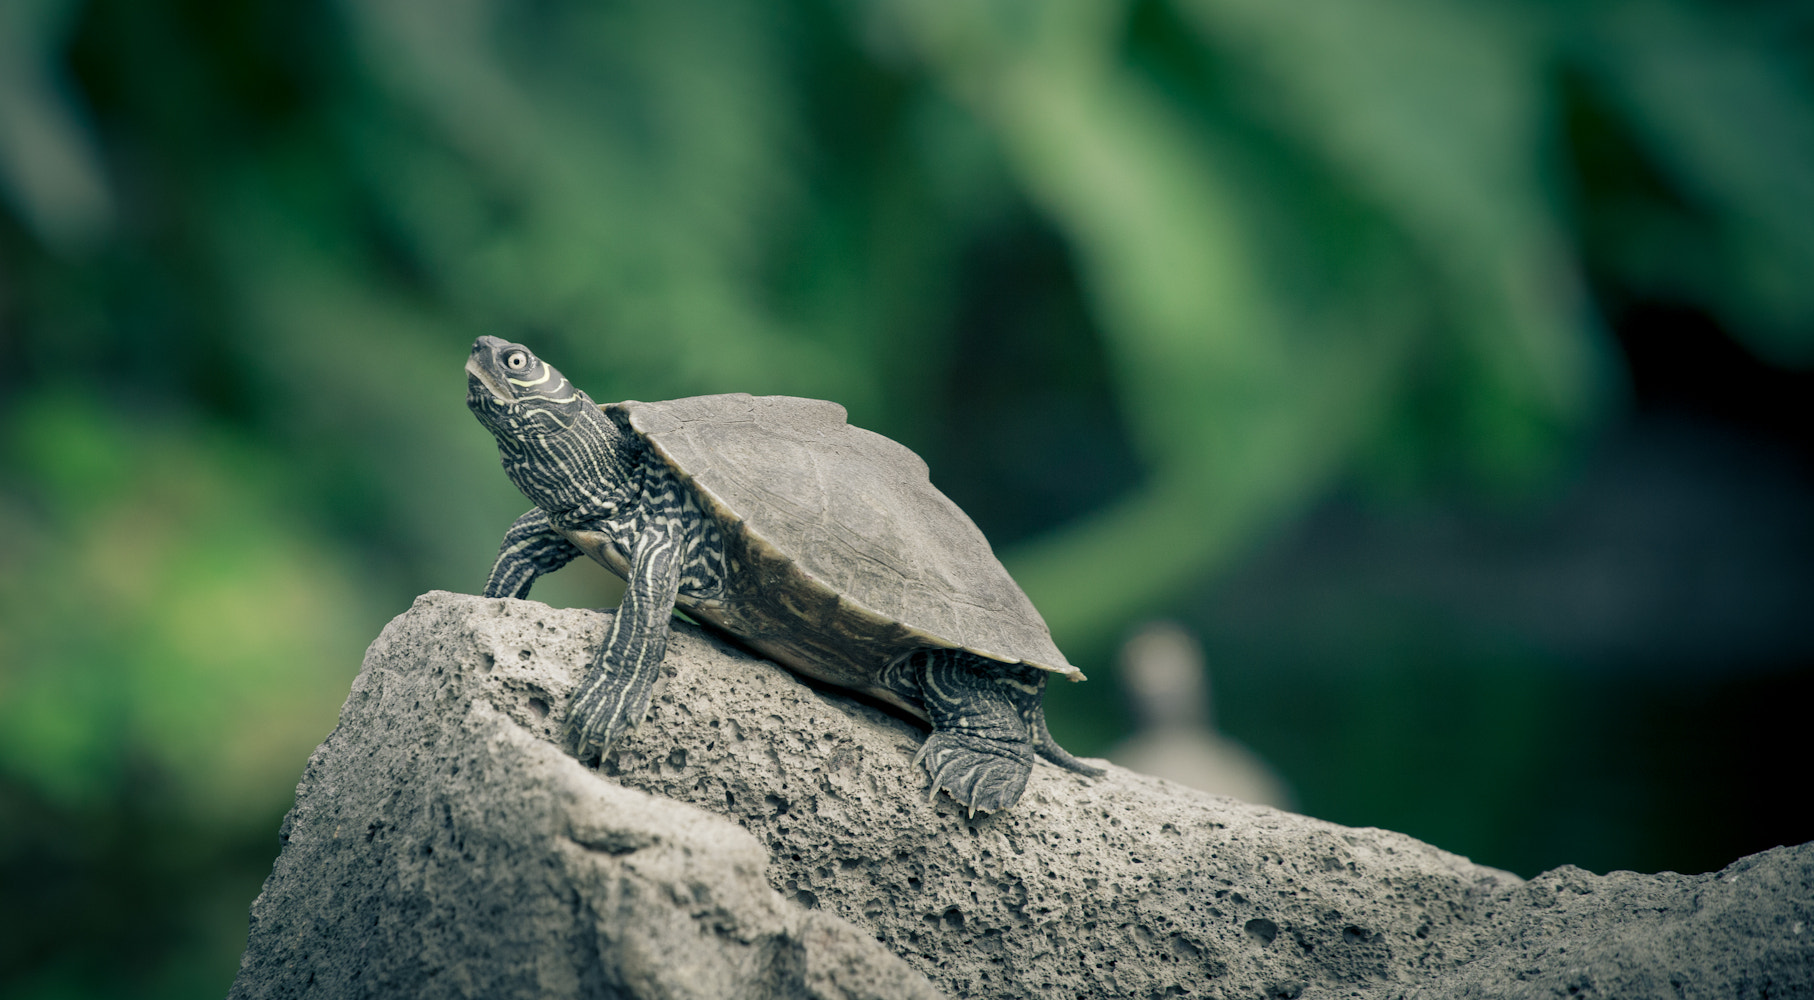 Photograph Turtle by Hamid S. on 500px